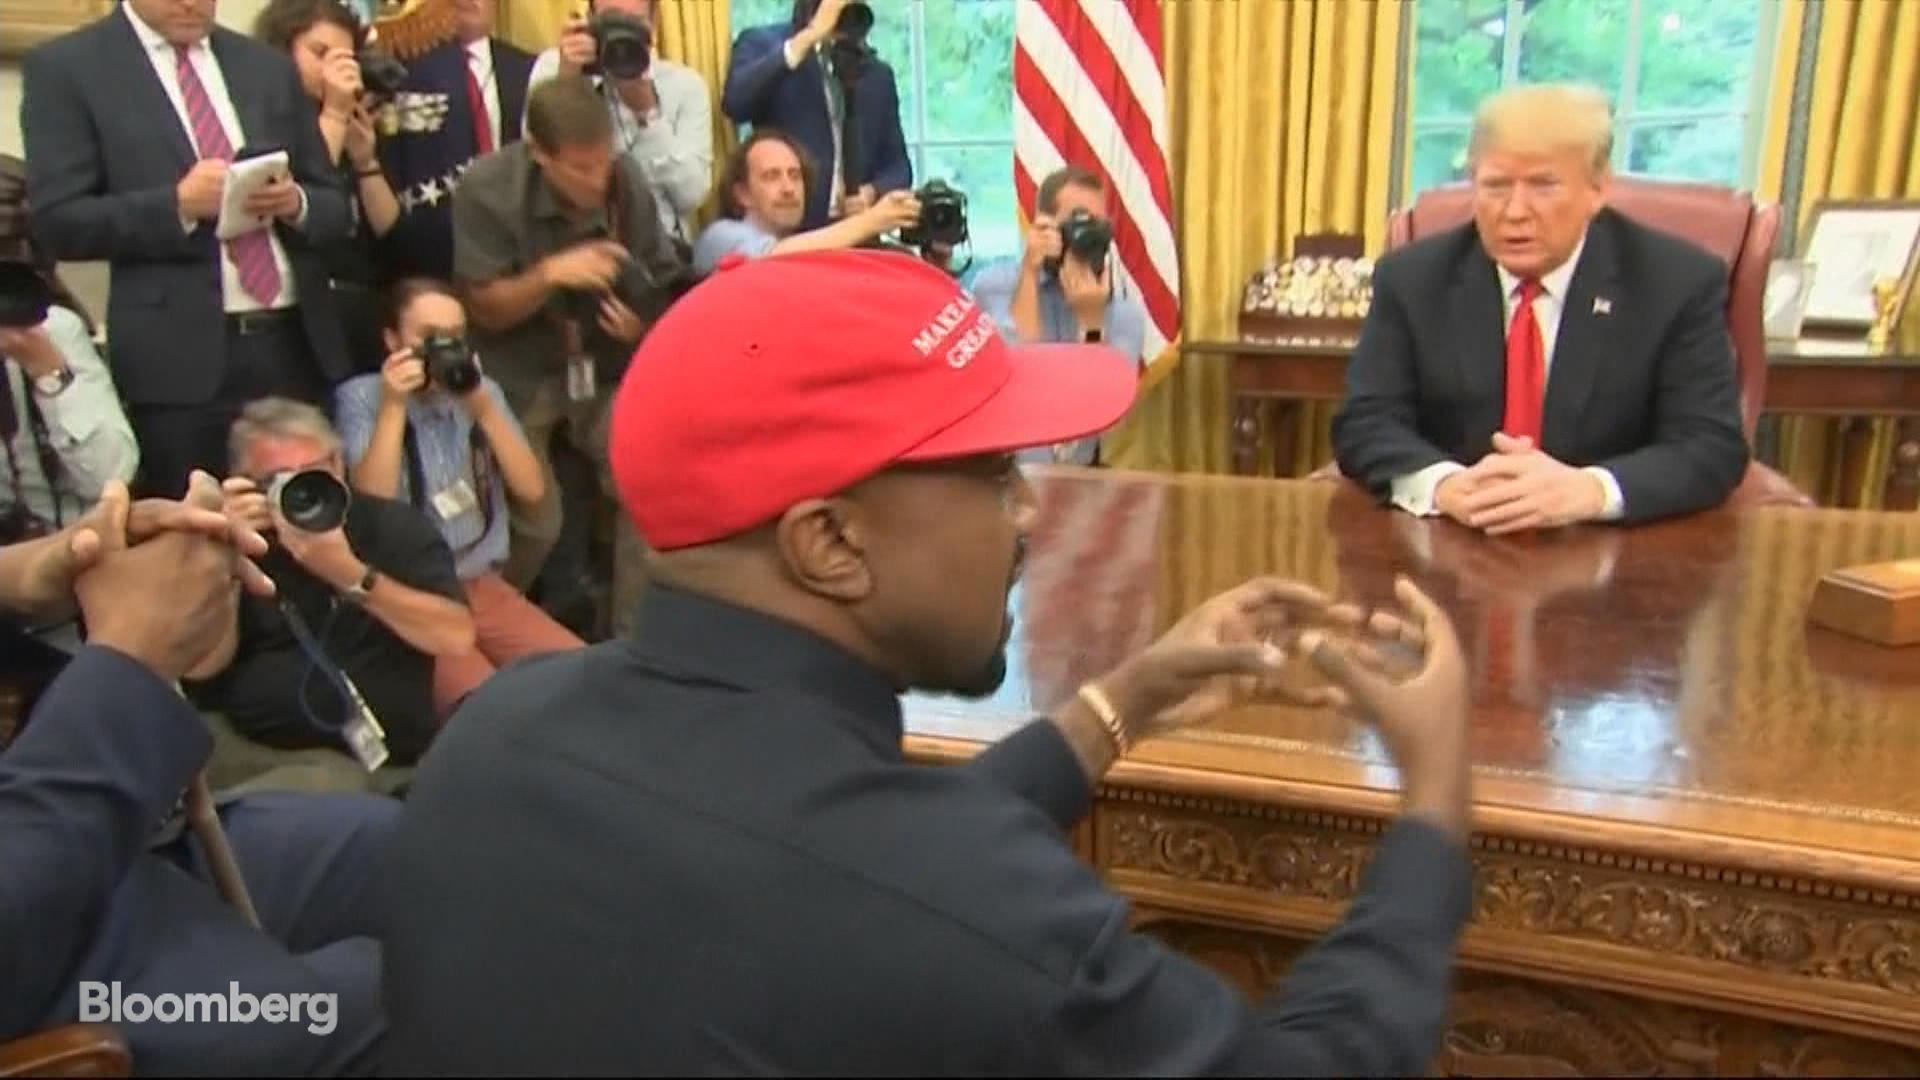 Kanye West Suggests Replacing Air Force One During Meeting With Trump